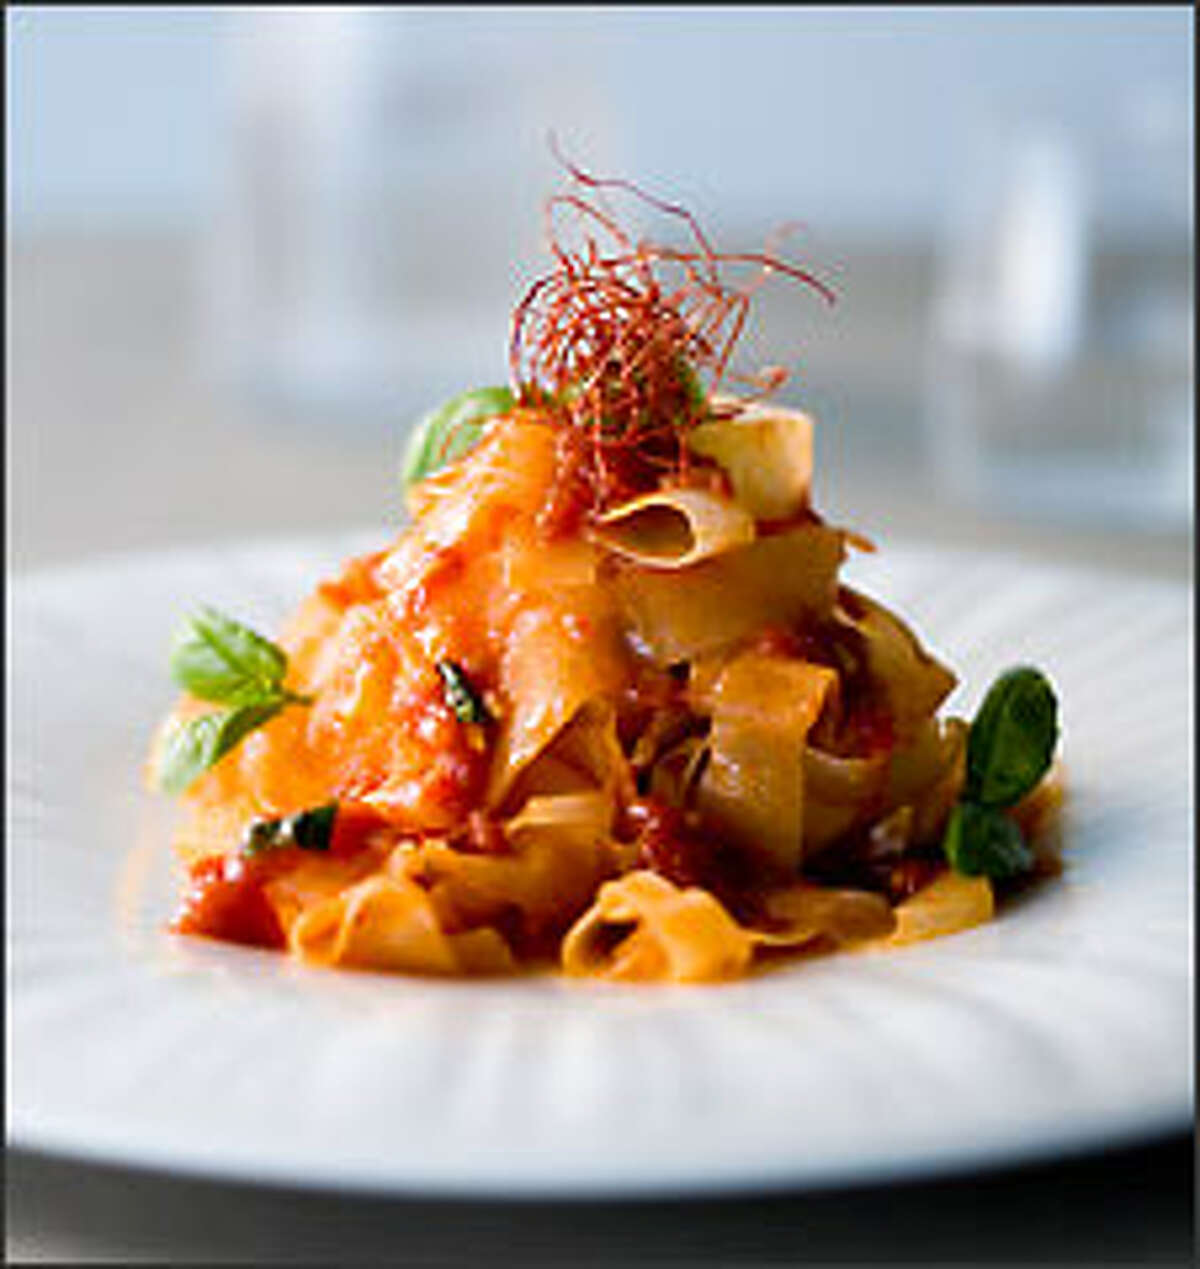 """Morimoto spent years honing classic techniques, but now fuses them with creative appearances, tastes and textures. Daikon """"fettuccine,"""" above, makes a visual pun on Italian food, pairing peeled ribbons of the radish with a quick tomato-basil sauce."""